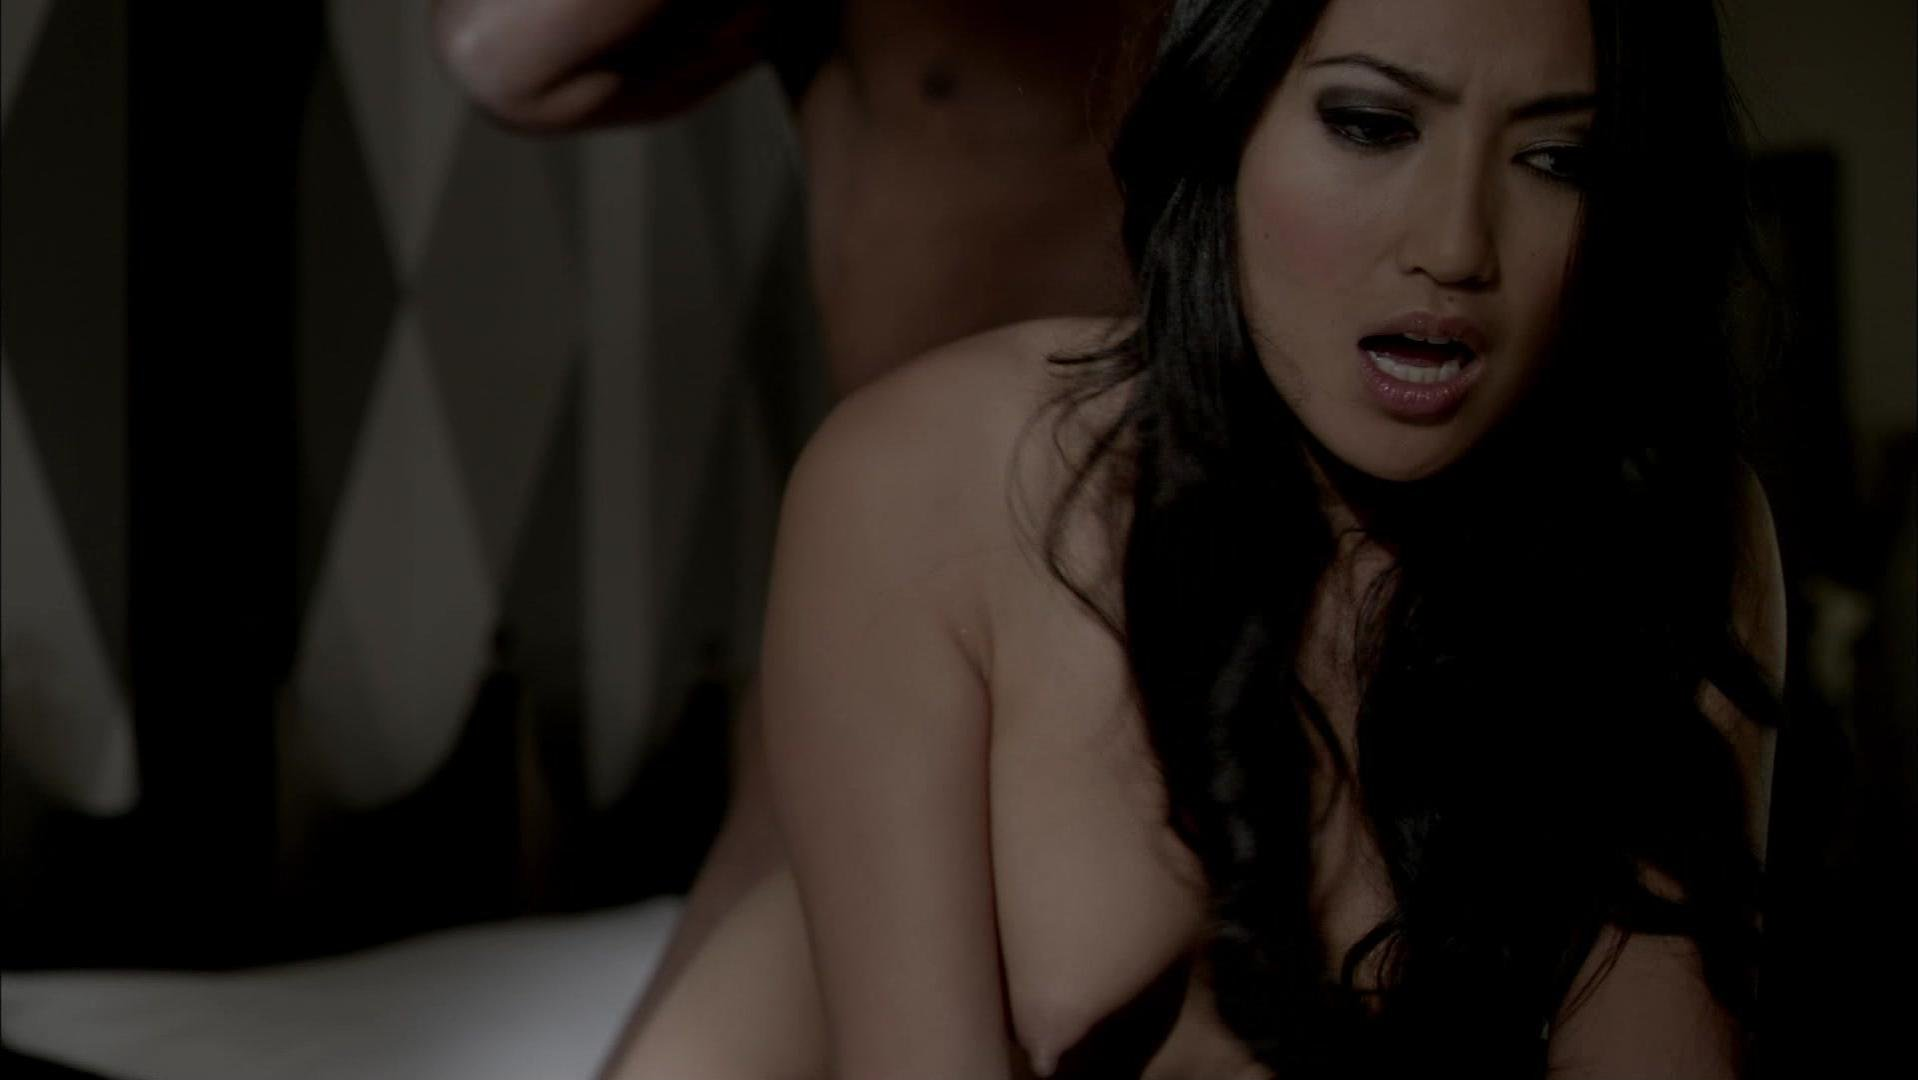 chasty ballesteros sex scene